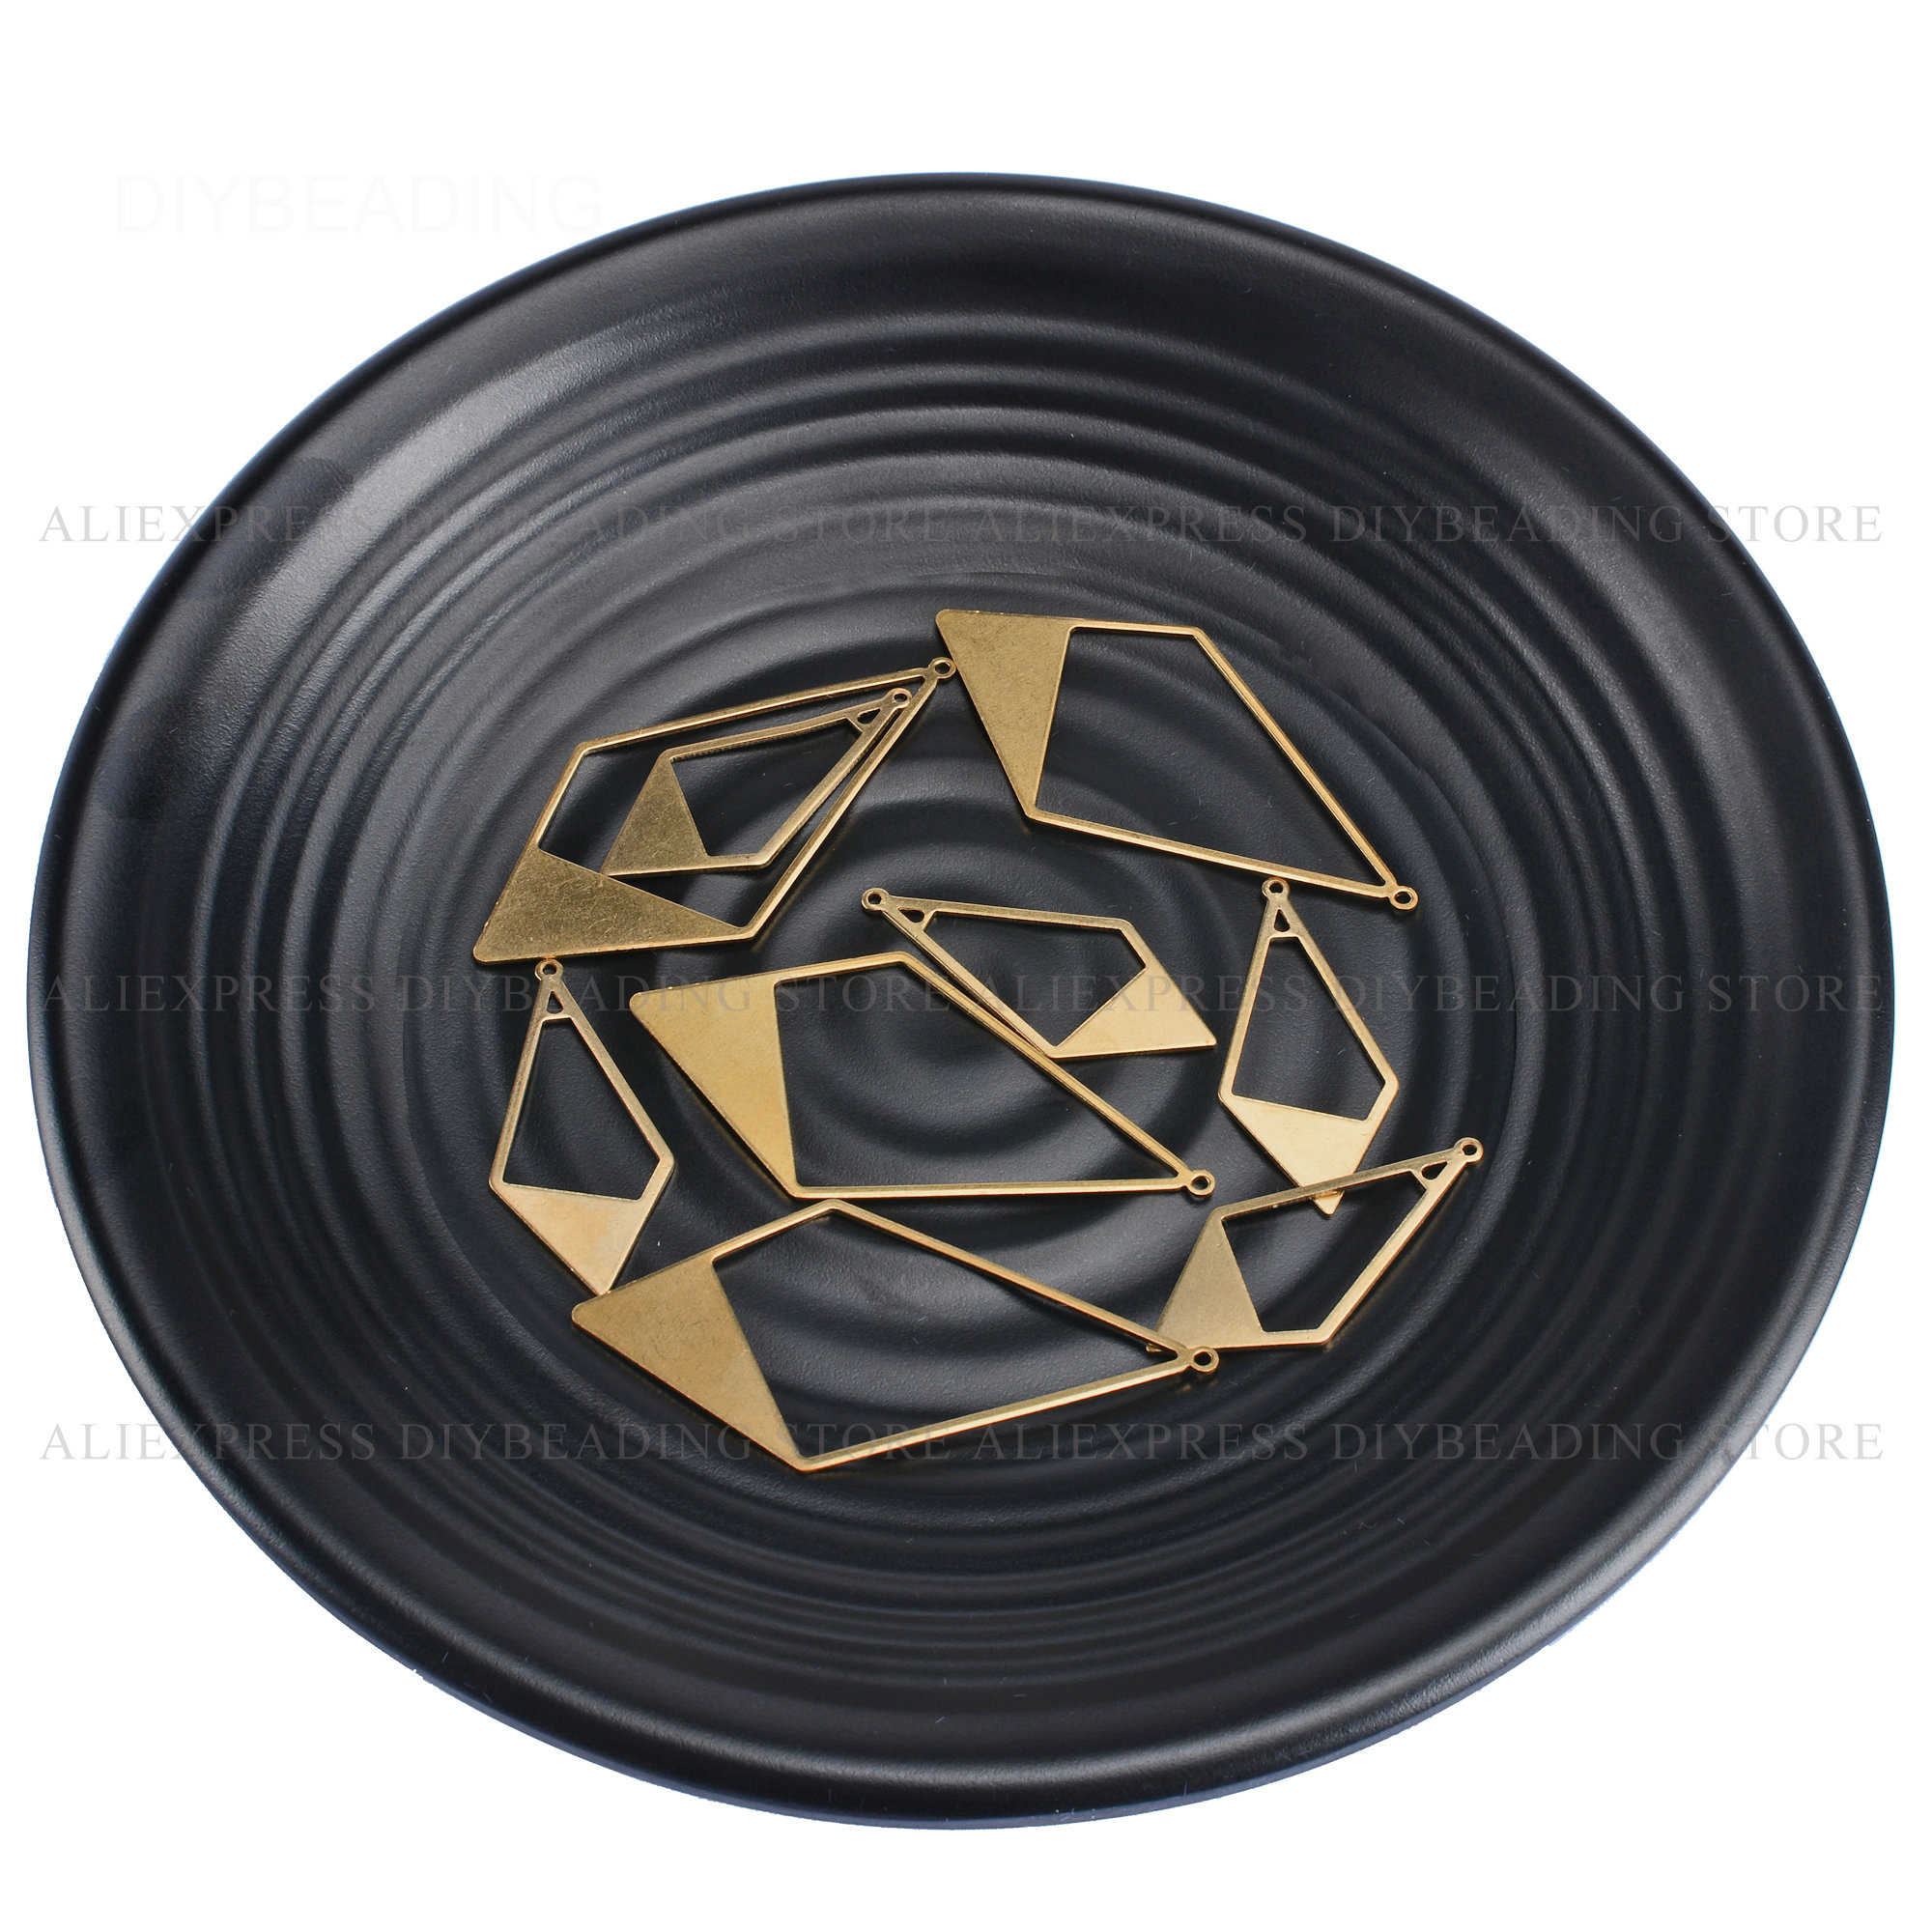 10-500 Pcs Large Size Brass Rhombus Geometric Finding Component Material For Women Earring Making Bulk Supplies (2 Sizes)